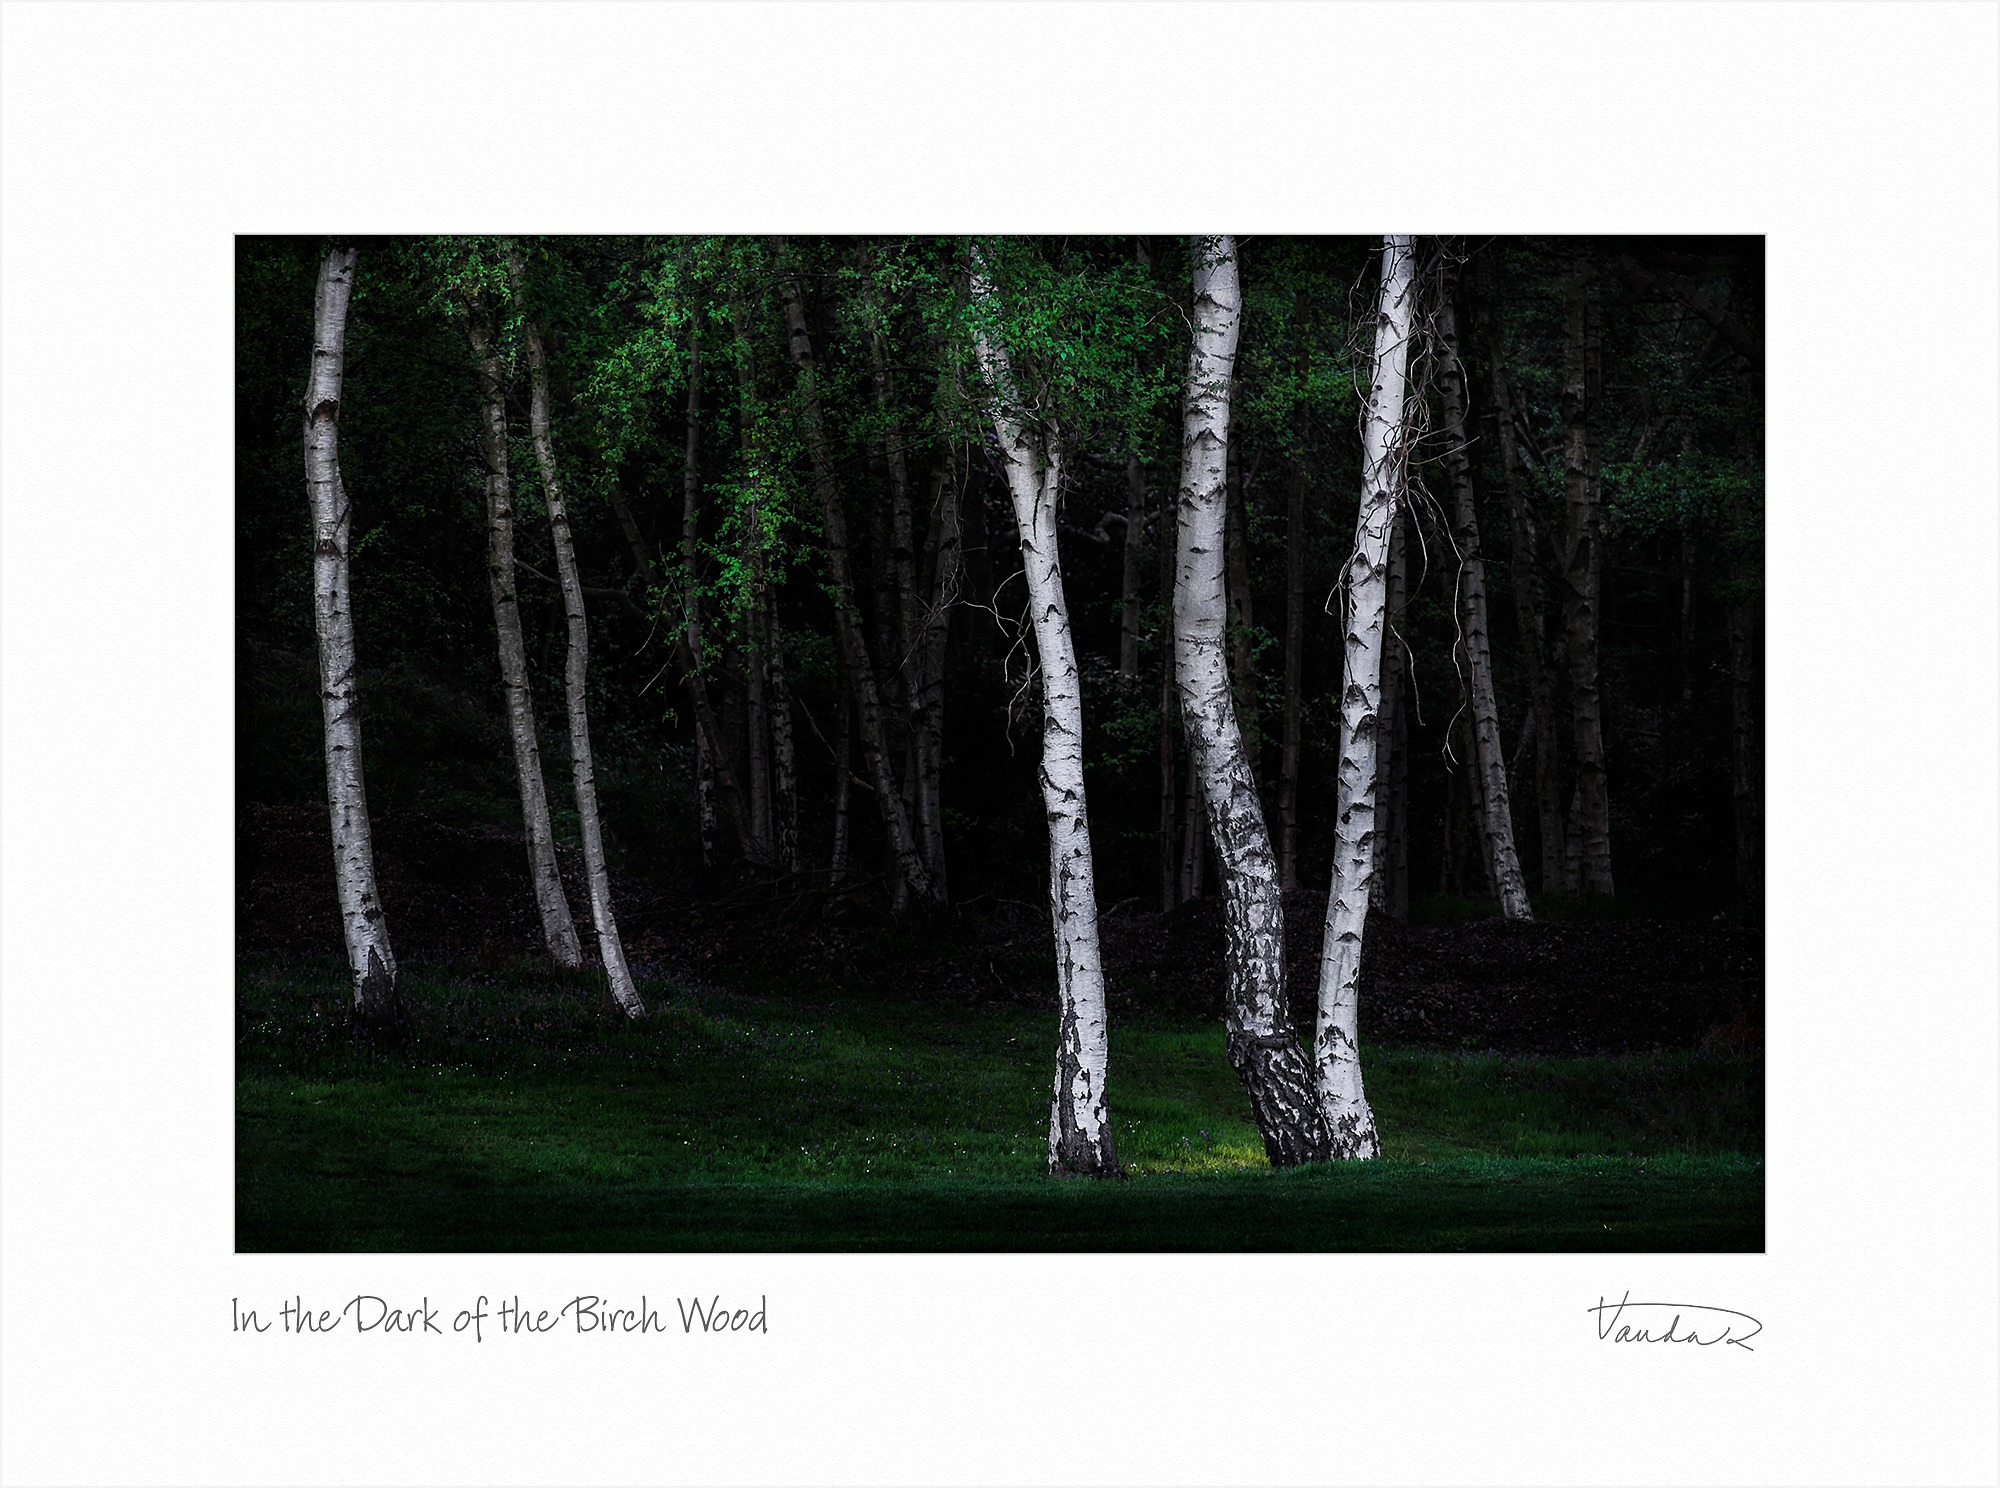 In the Dark of the Birch Wood